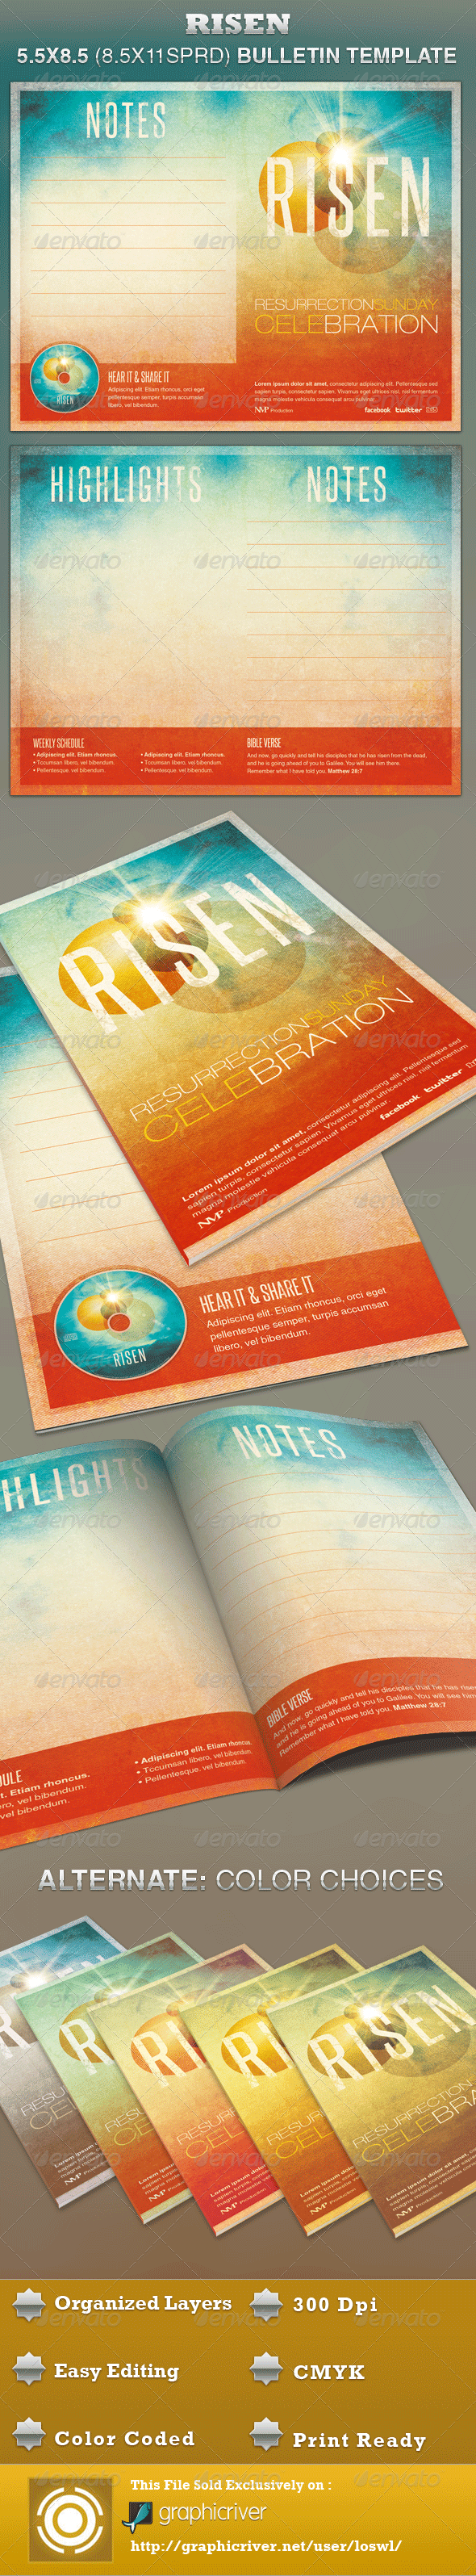 GraphicRiver Risen Church Bulletin Template 3239147